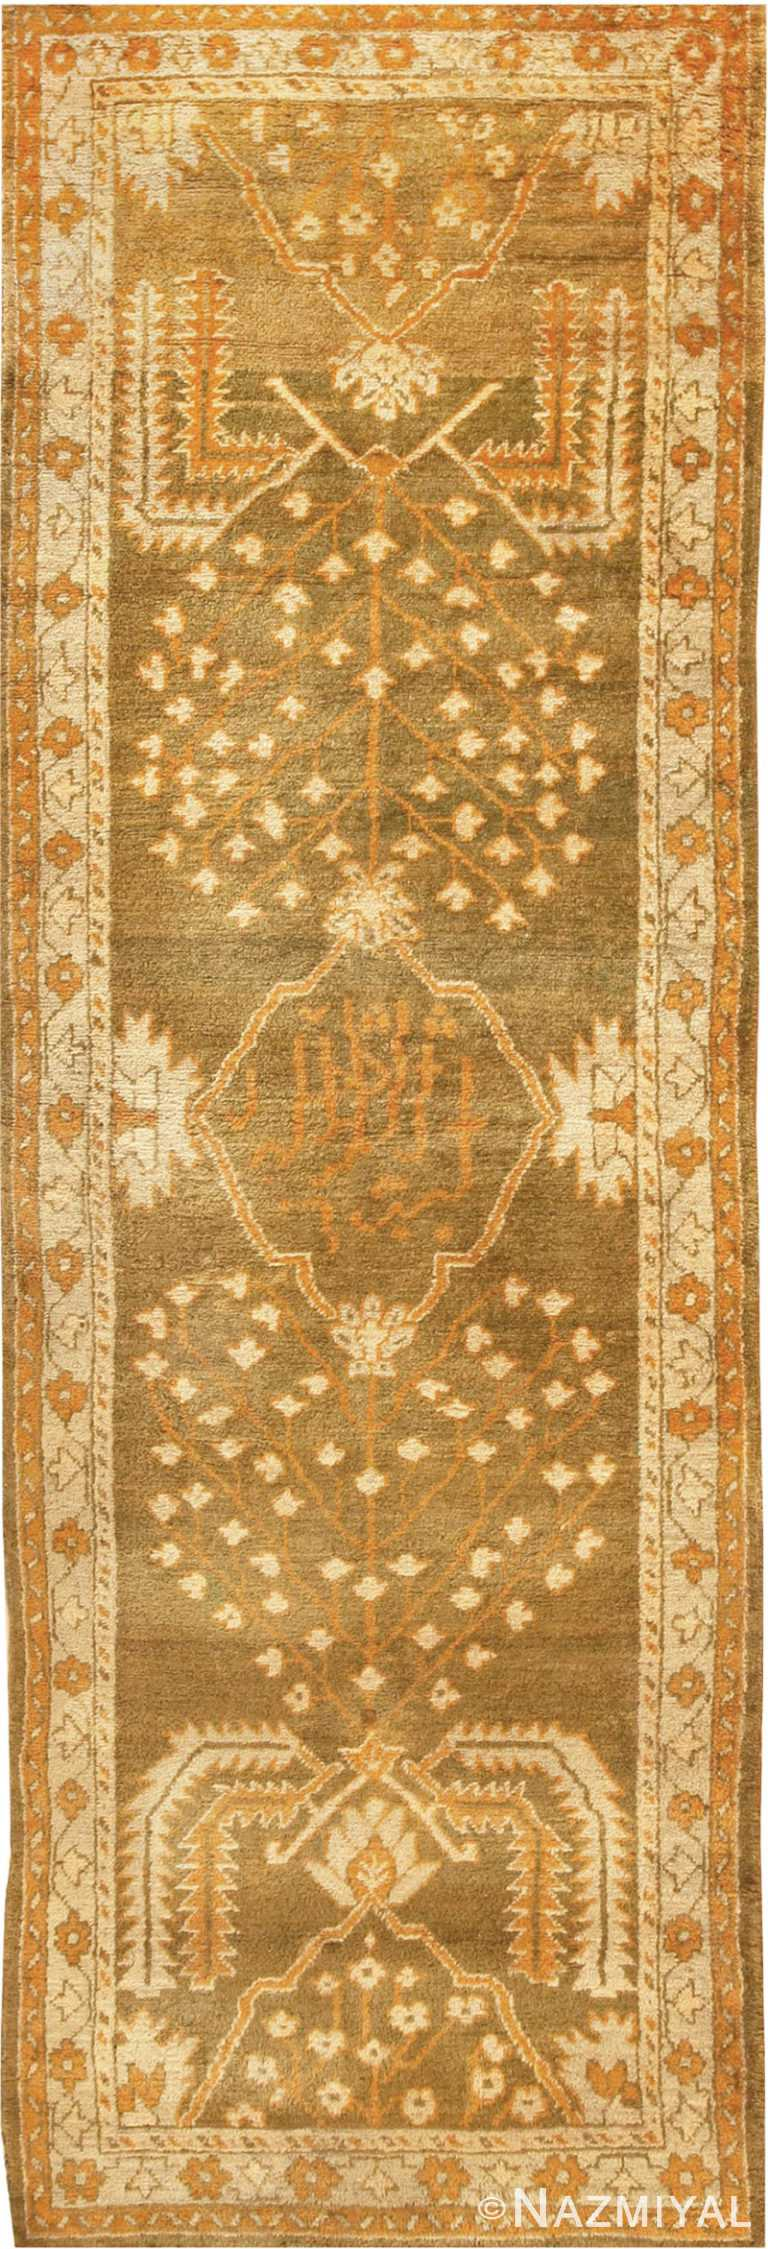 Antique Turkish Green Oushak Runner Rug #42997 by Nazmiyal Antique Rugs